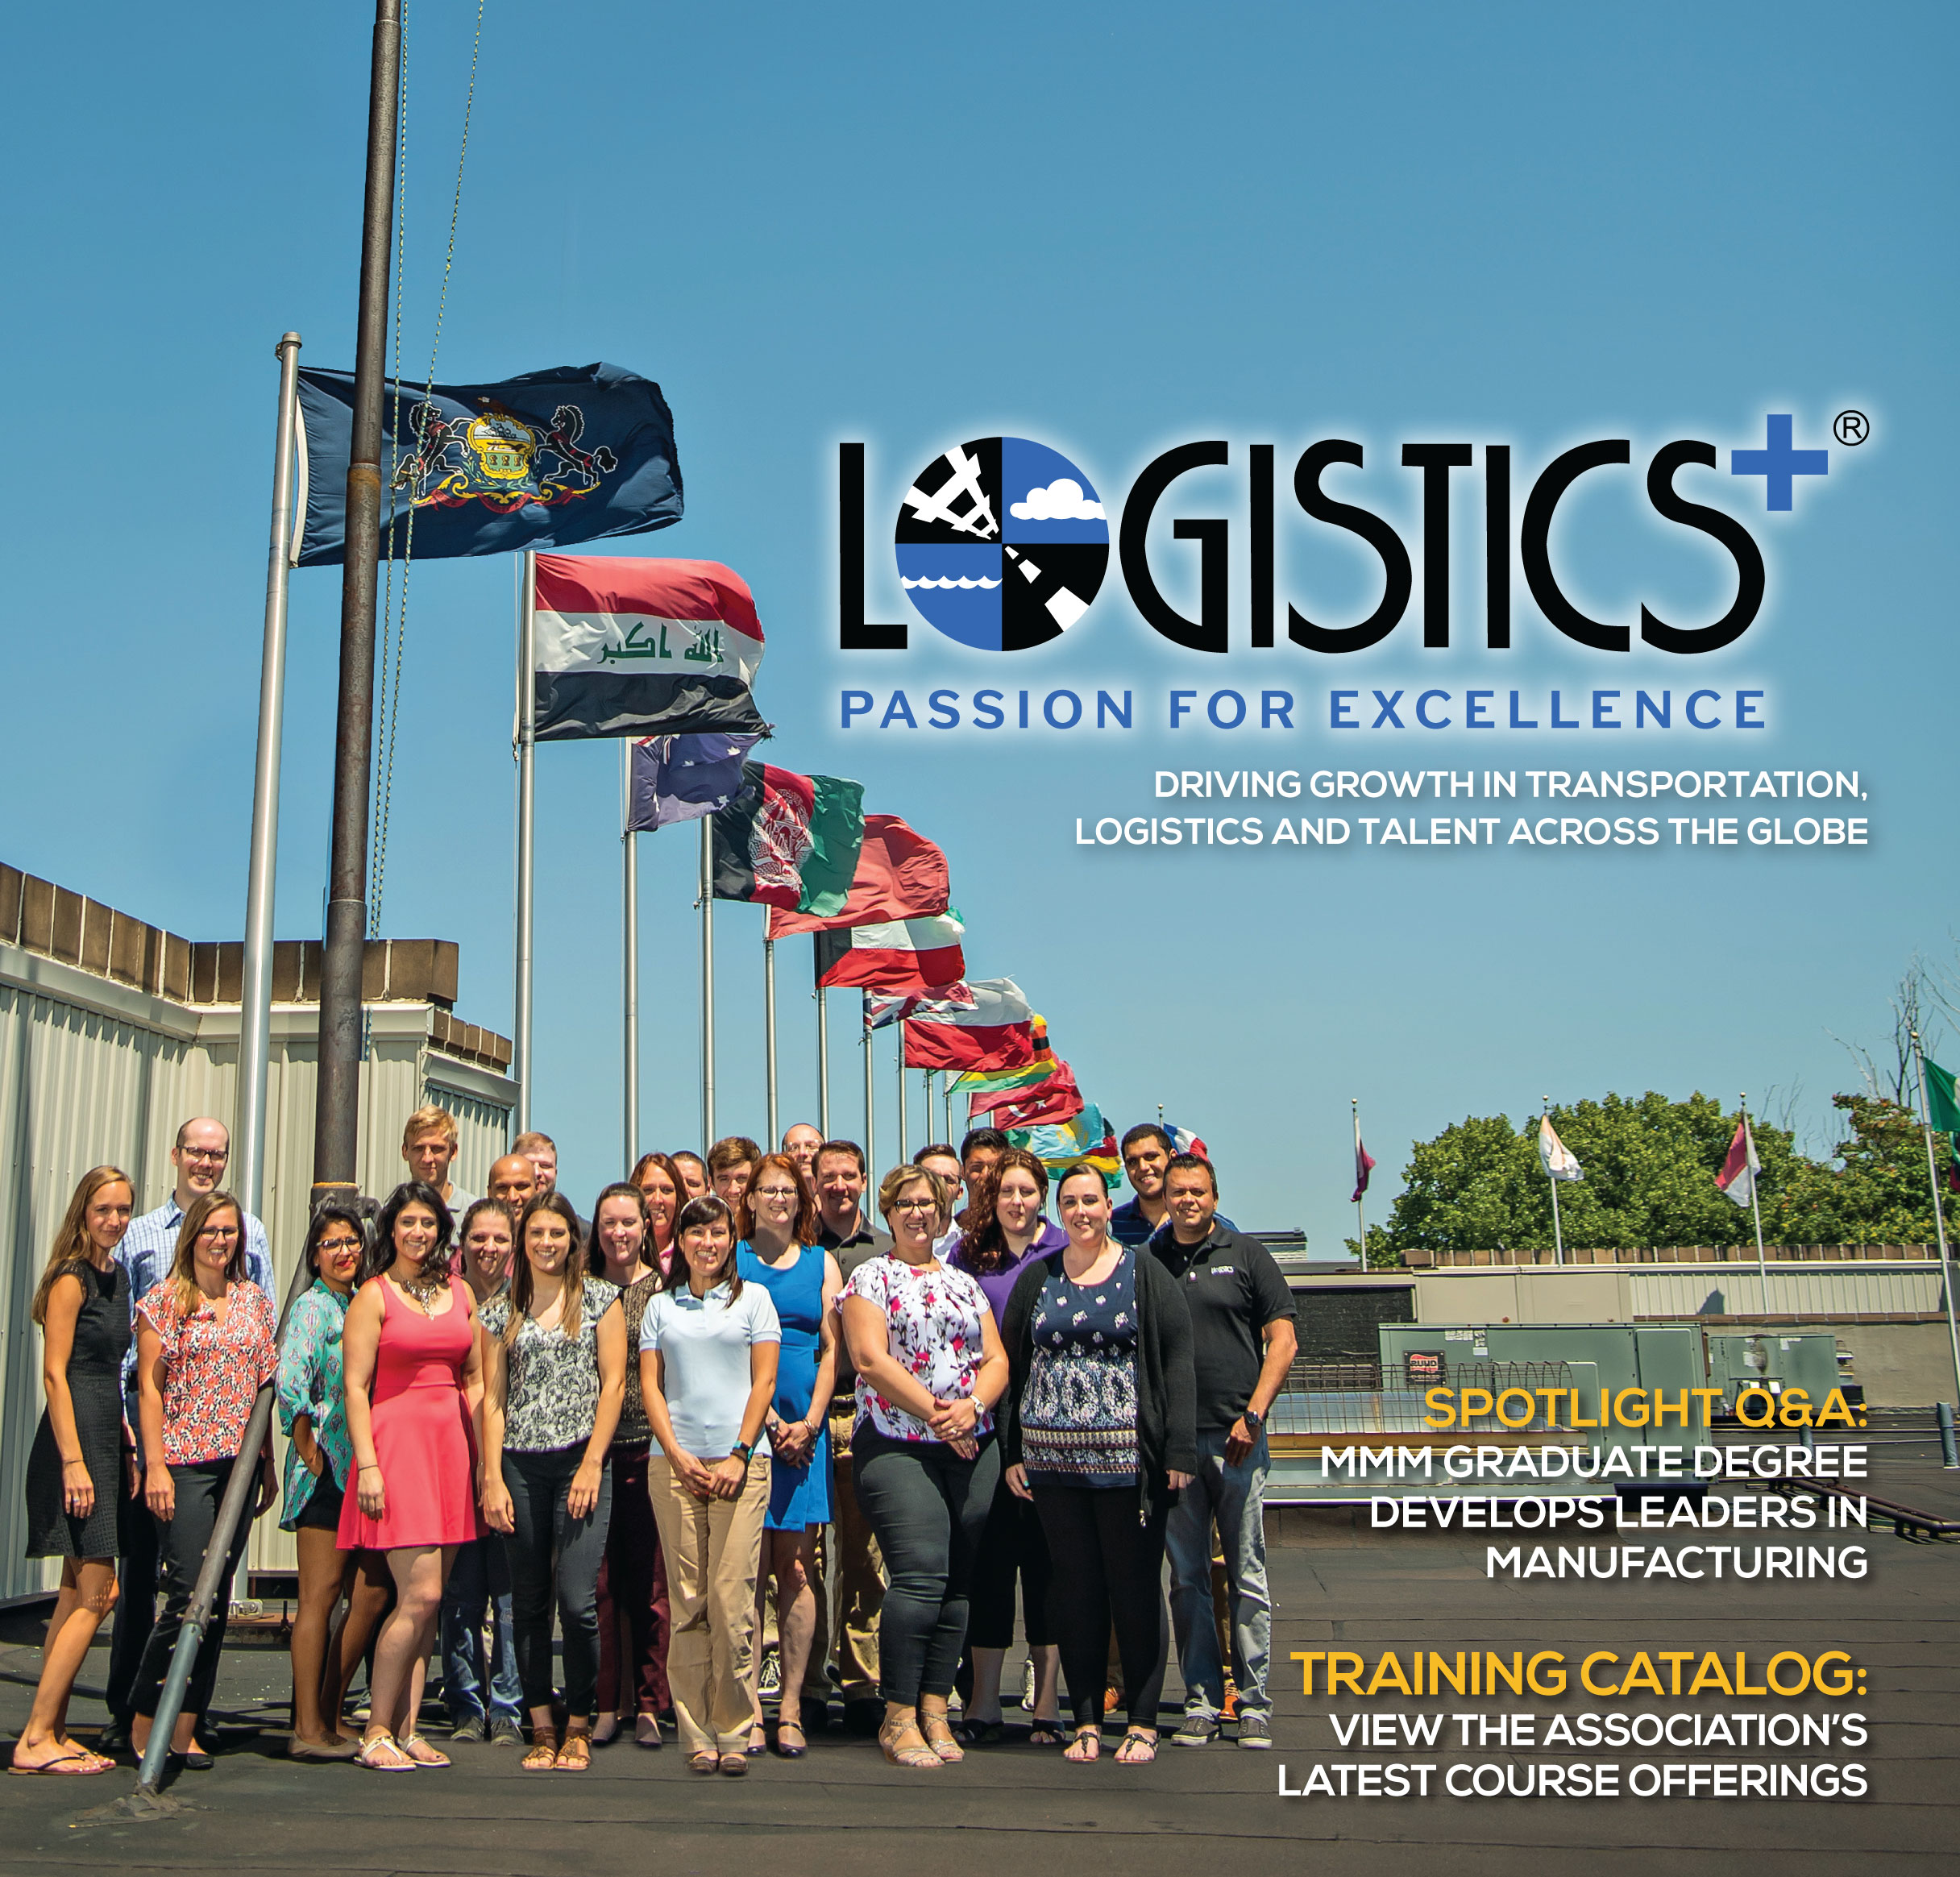 Global Logistics Company - Logistics Plus